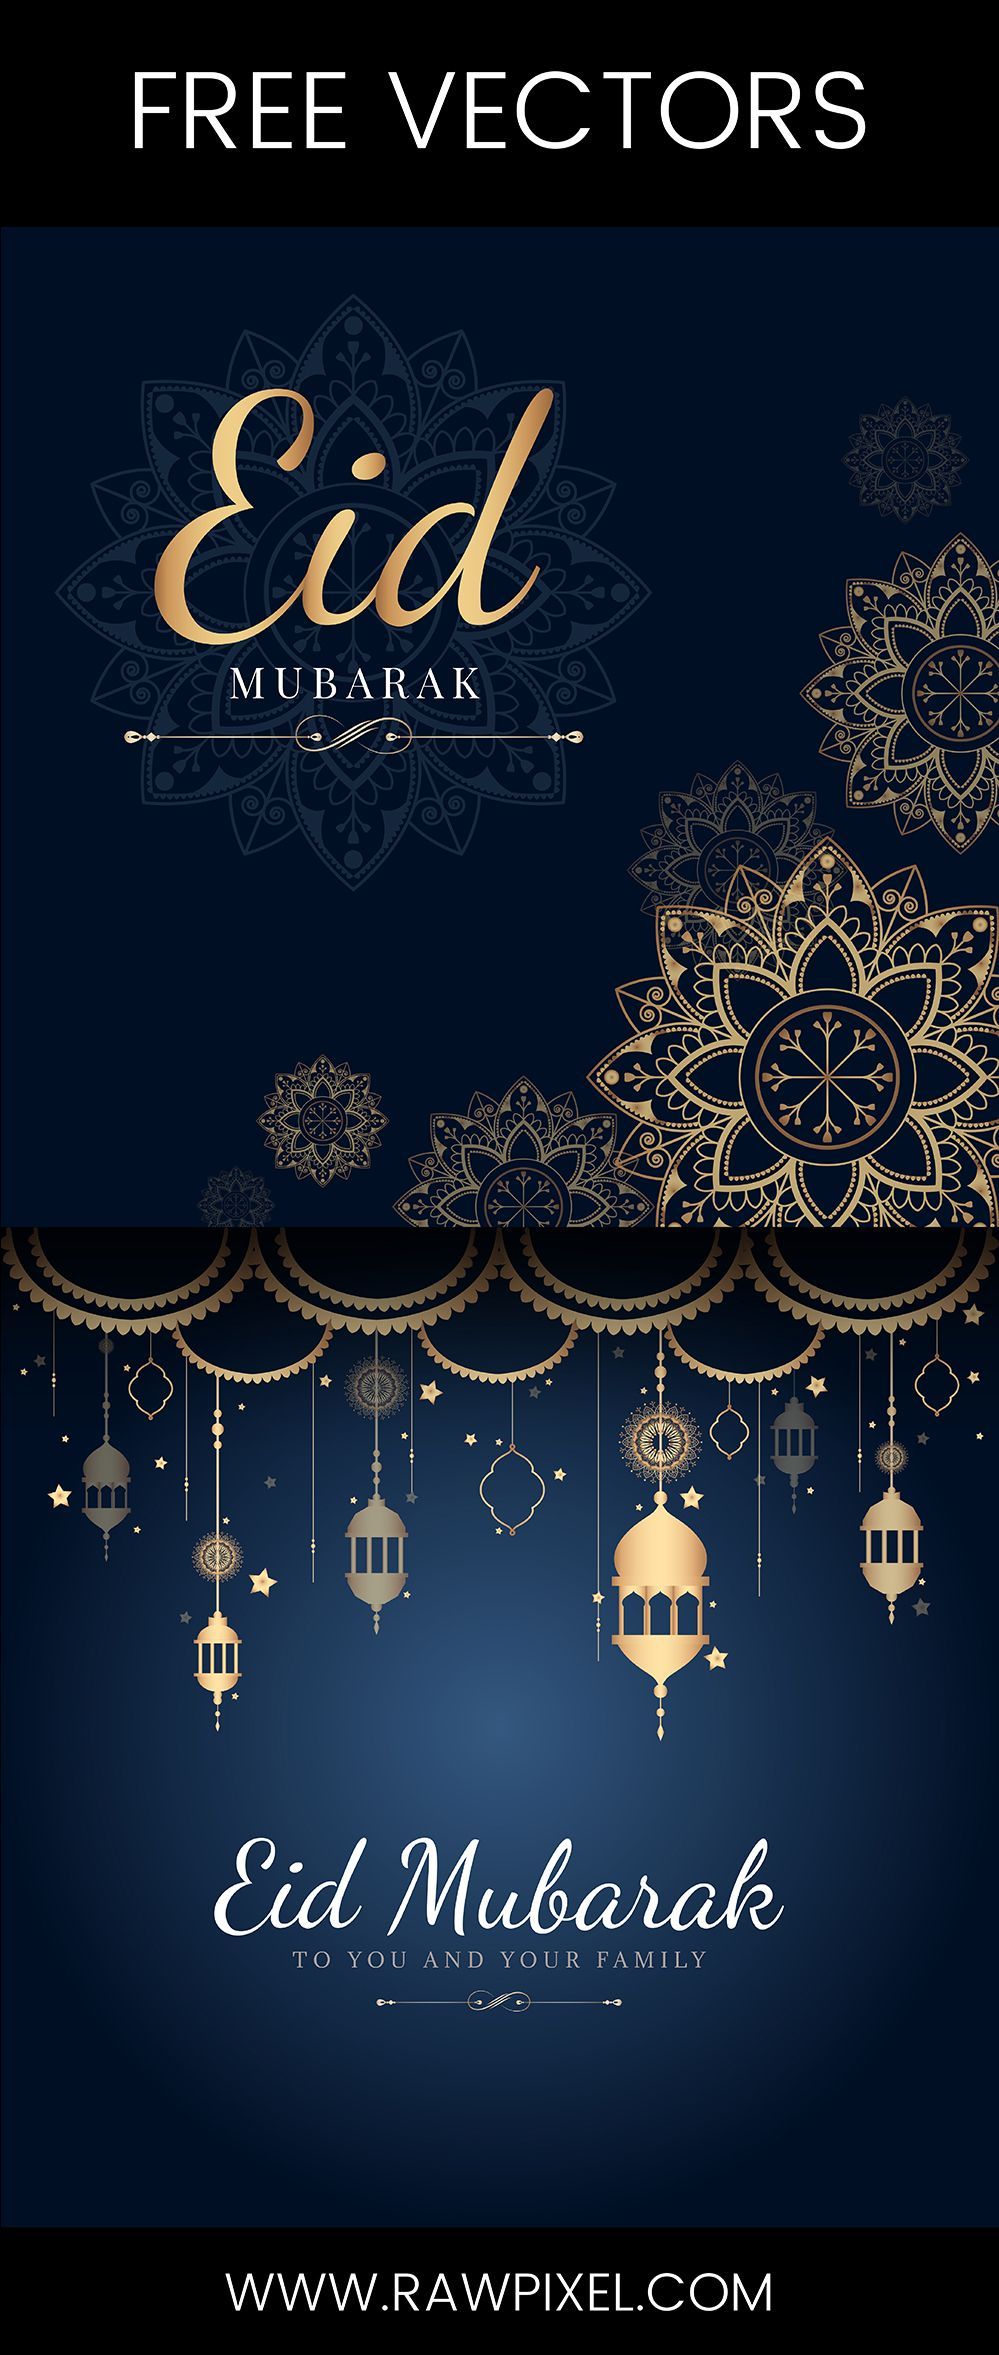 Free To Download Royalty Free Eid Mubarak Vectors Plus Many More Psd Mockups And Illustrations At Rawpixel Com Kartu E Card Fotografi Konseptual